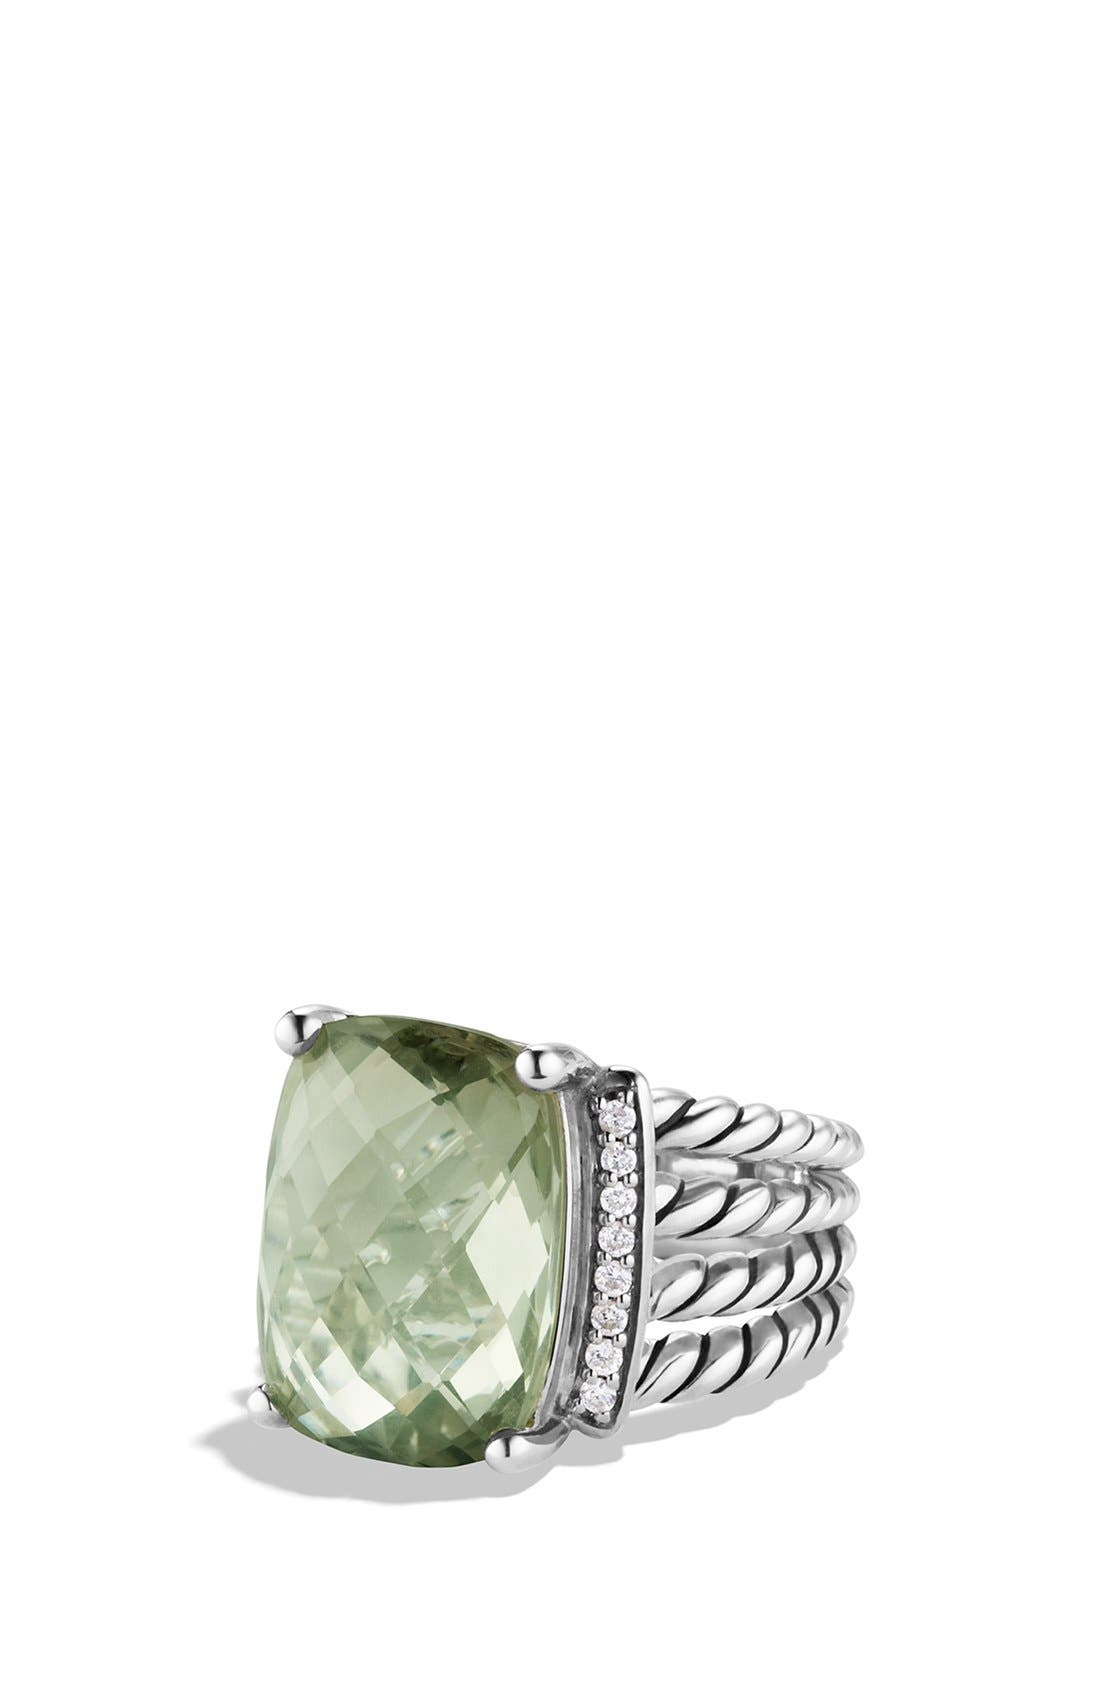 David Yurman 'Wheaton' Ring with Semiprecious Stone & Diamonds